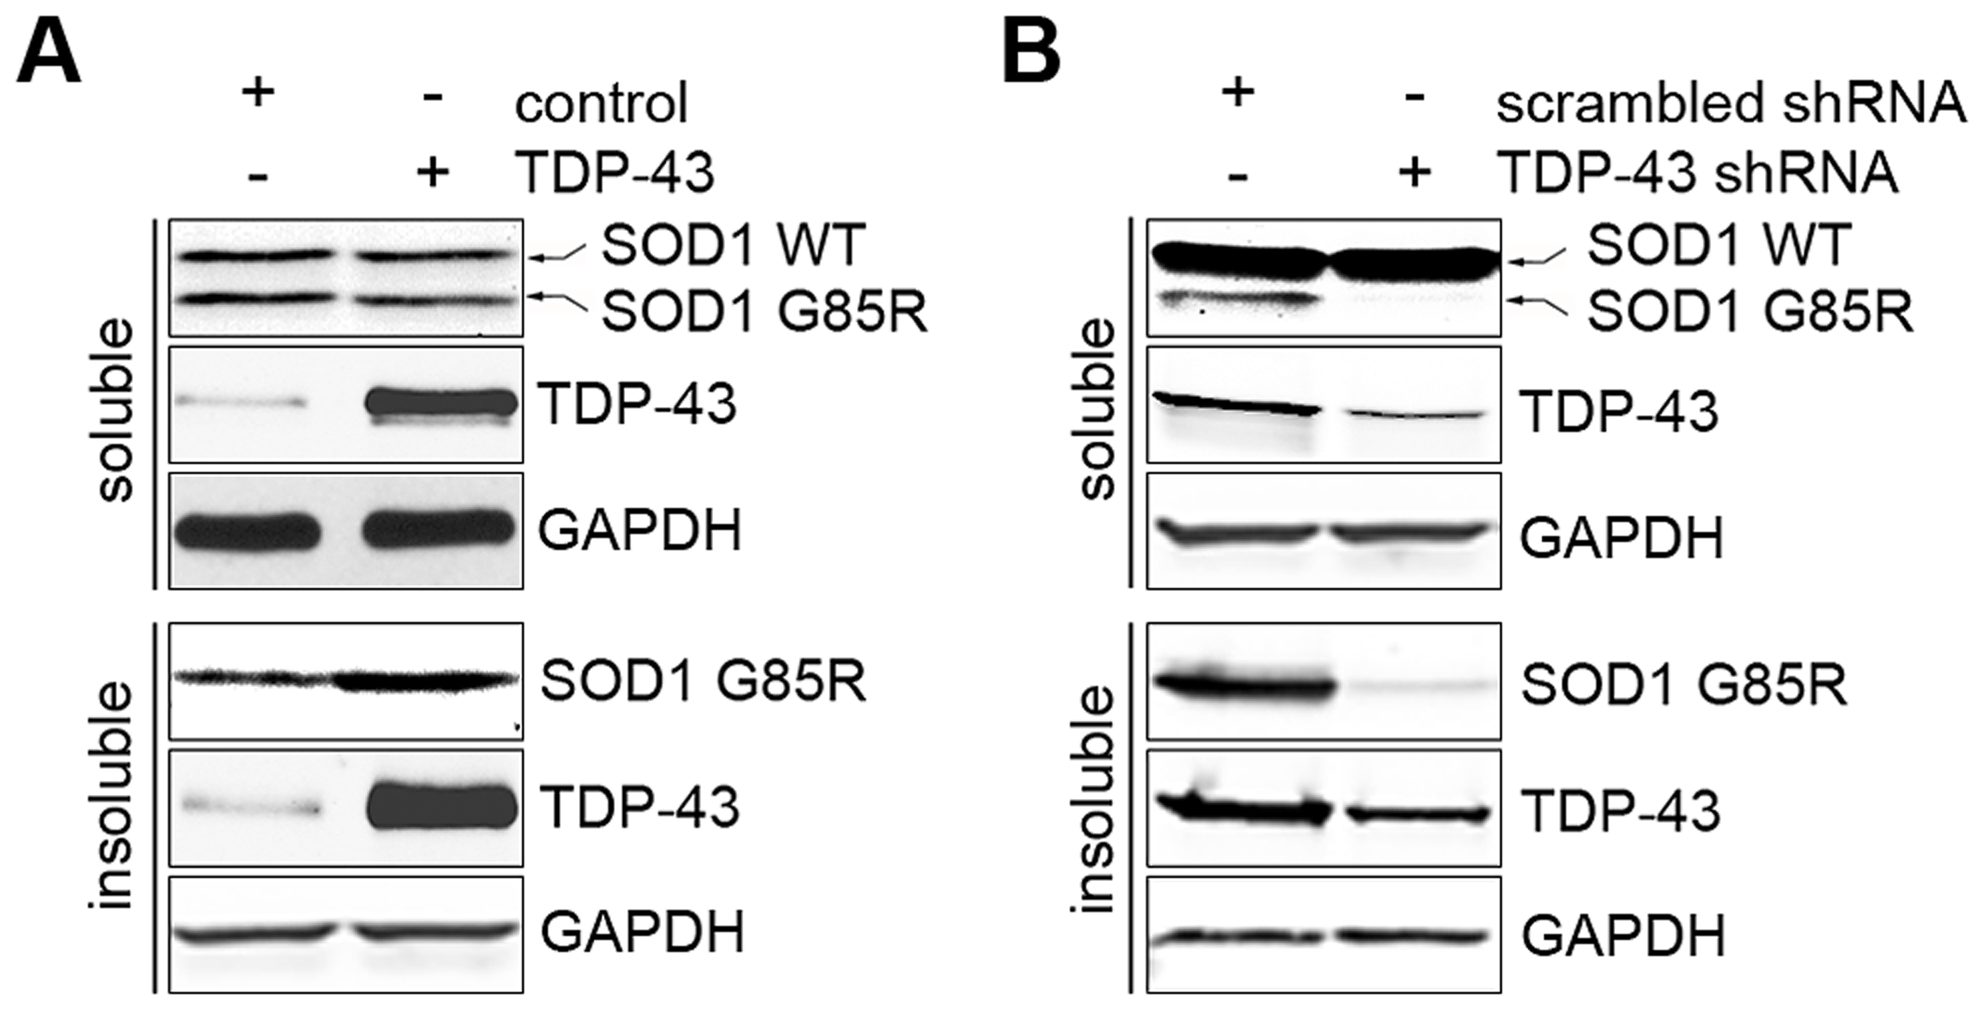 TDP-43 regulates levels of misfolded proteins.